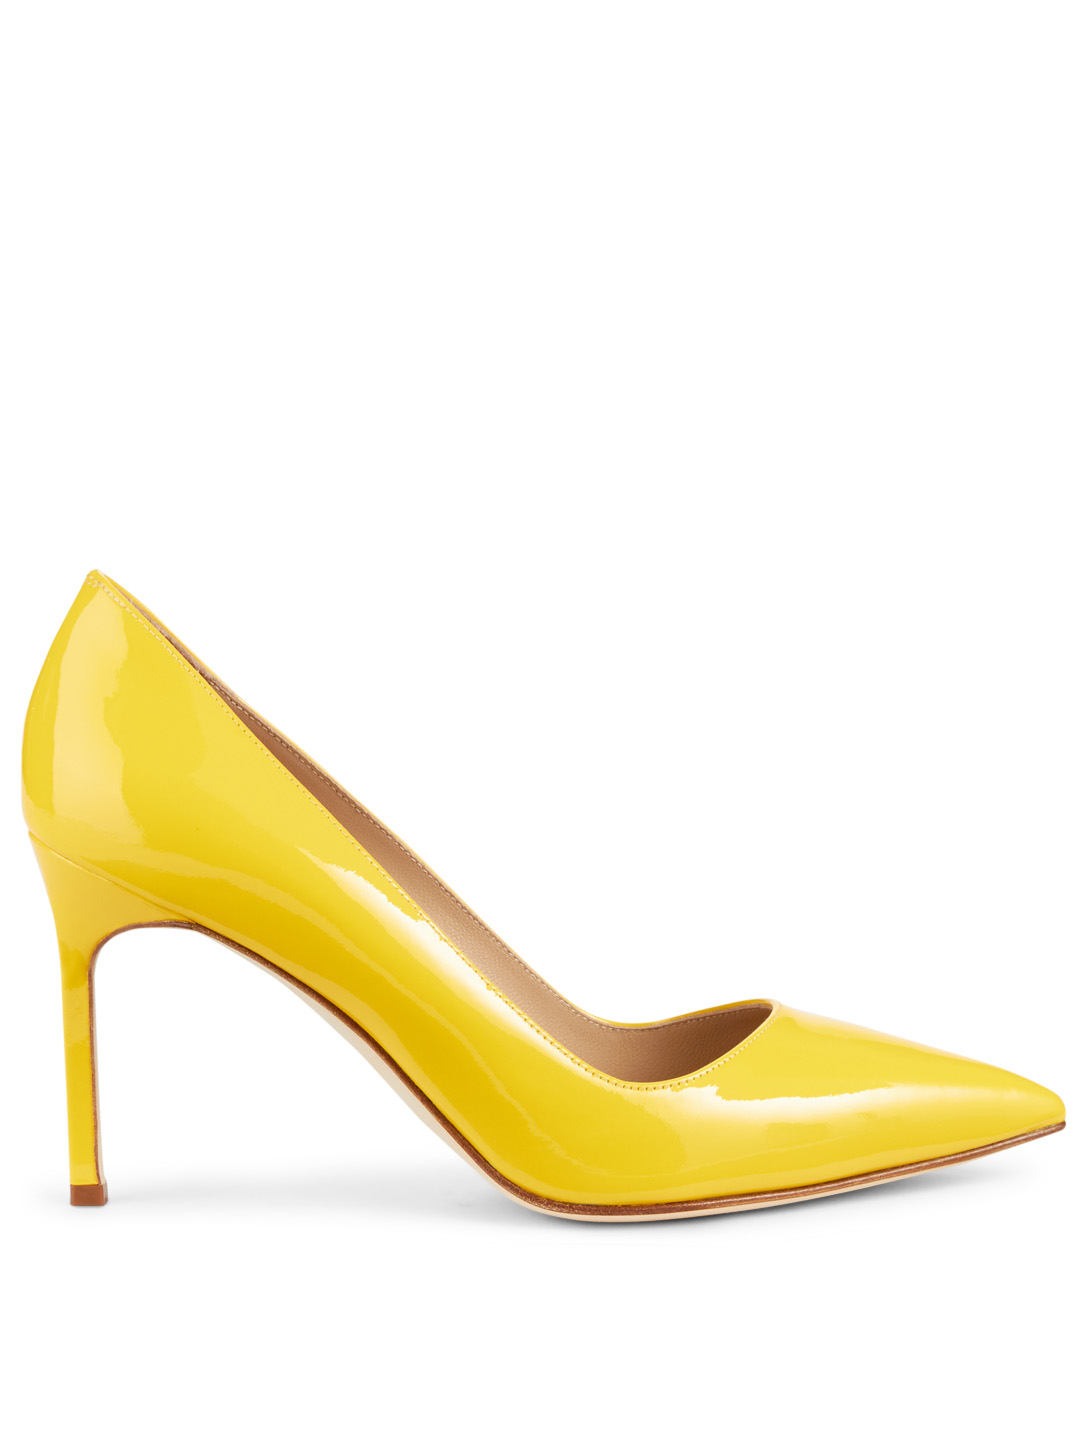 MANOLO BLAHNIK BB 90 Leather Pumps Womens Yellow